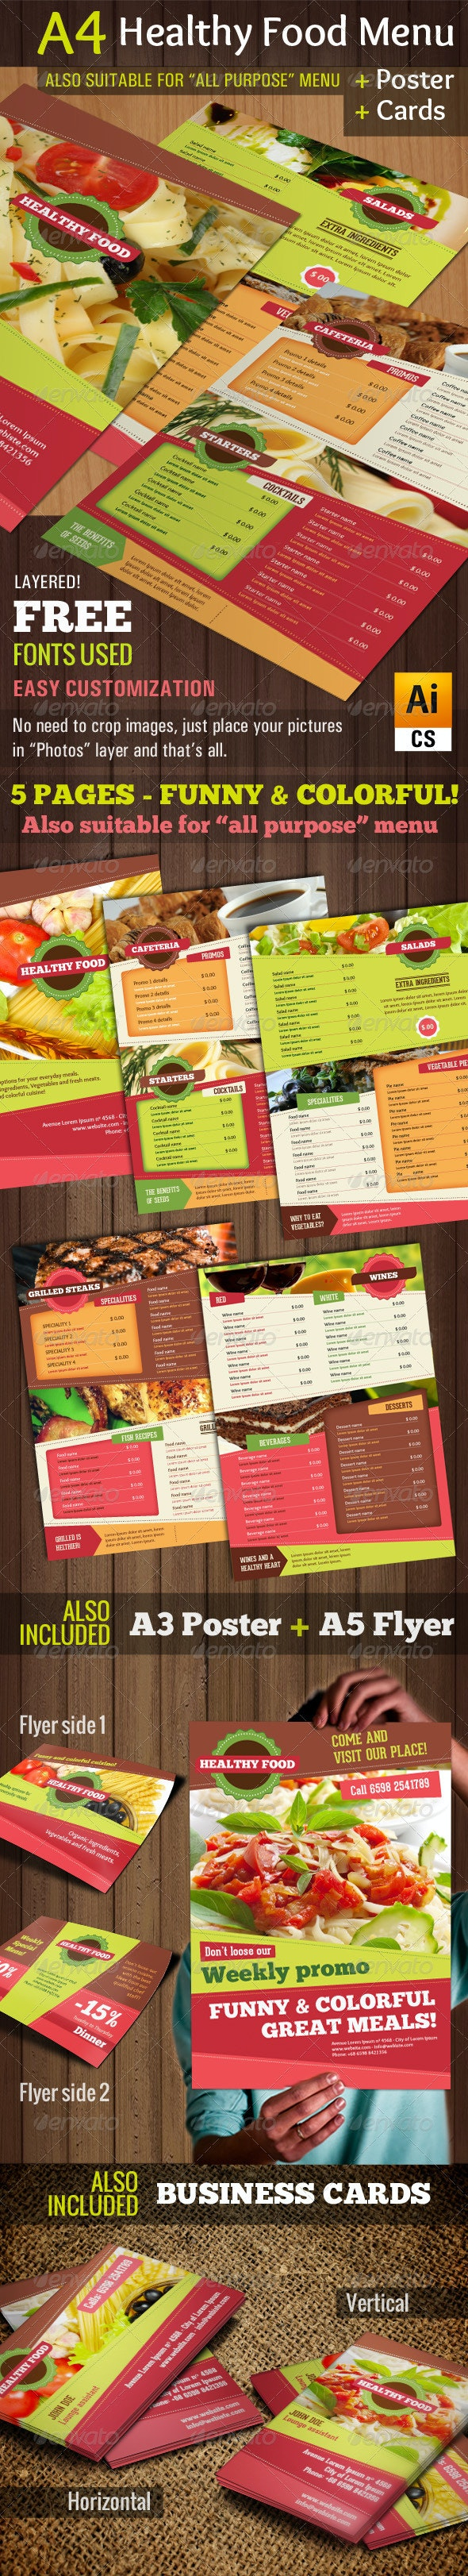 A4 Healthy Food Menu + Poster + Flyer + Cards by good ...